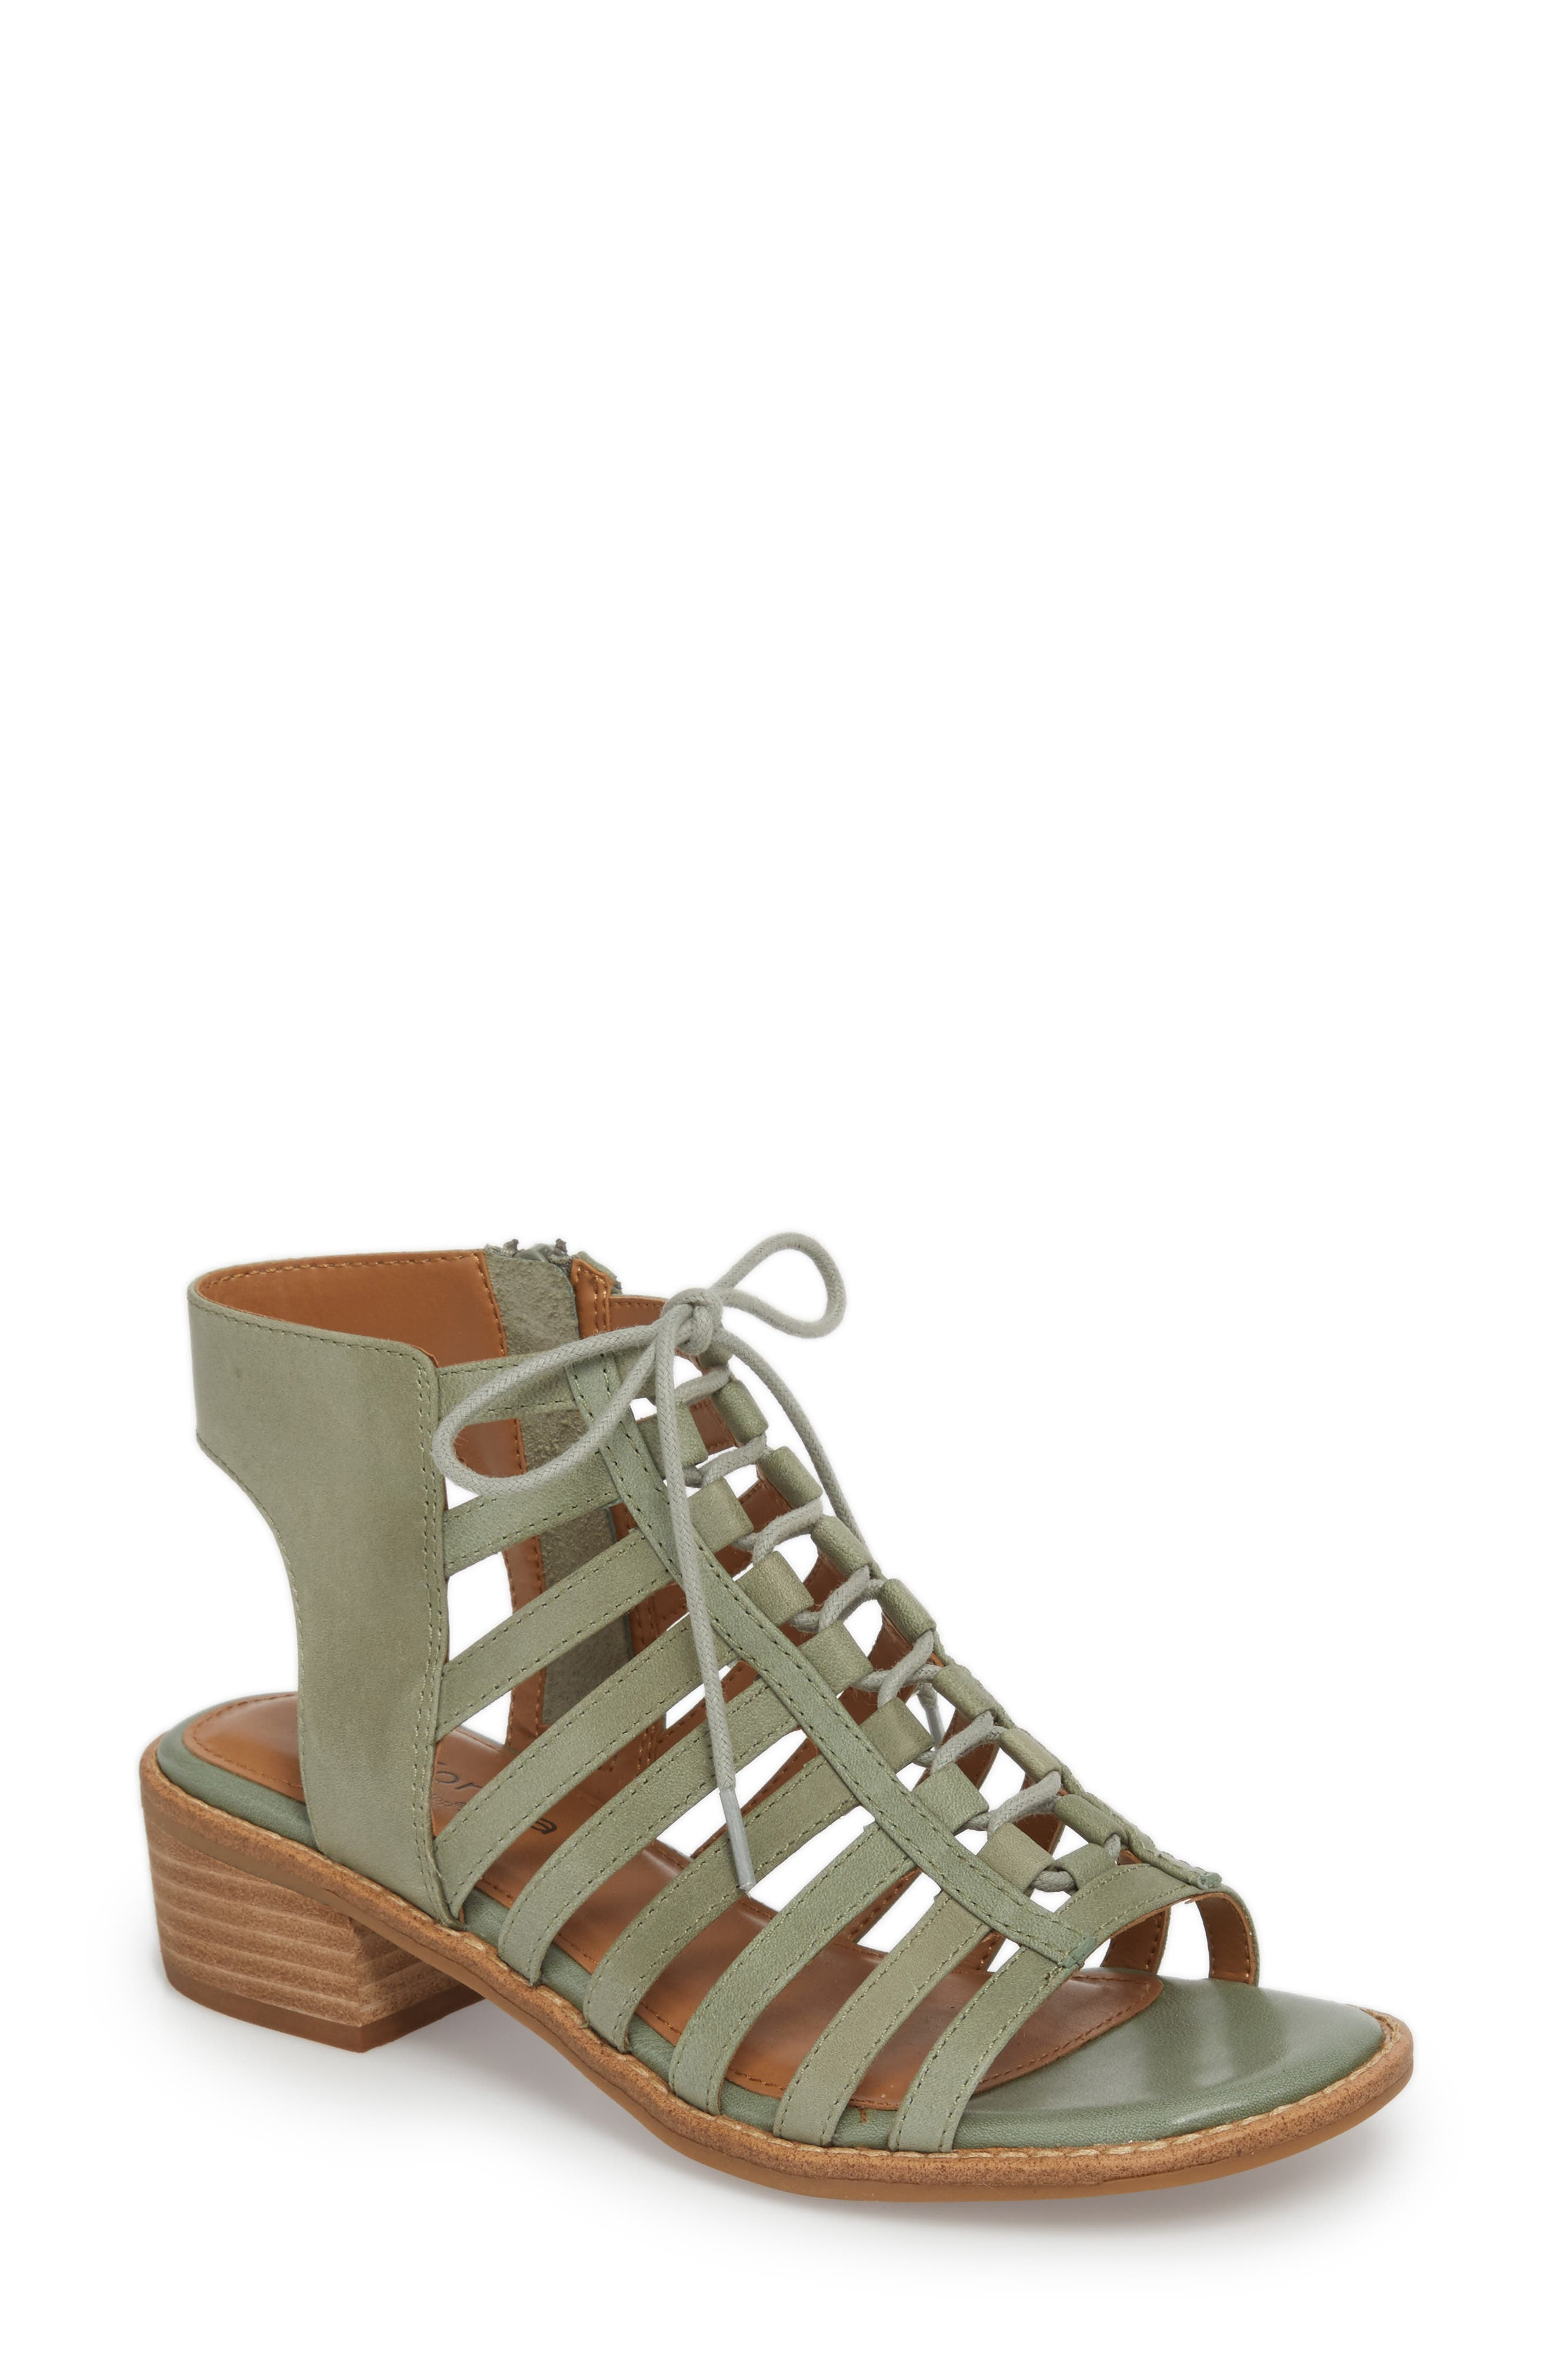 Blossom Sandal,                         Main,                         color, SAGE LEATHER